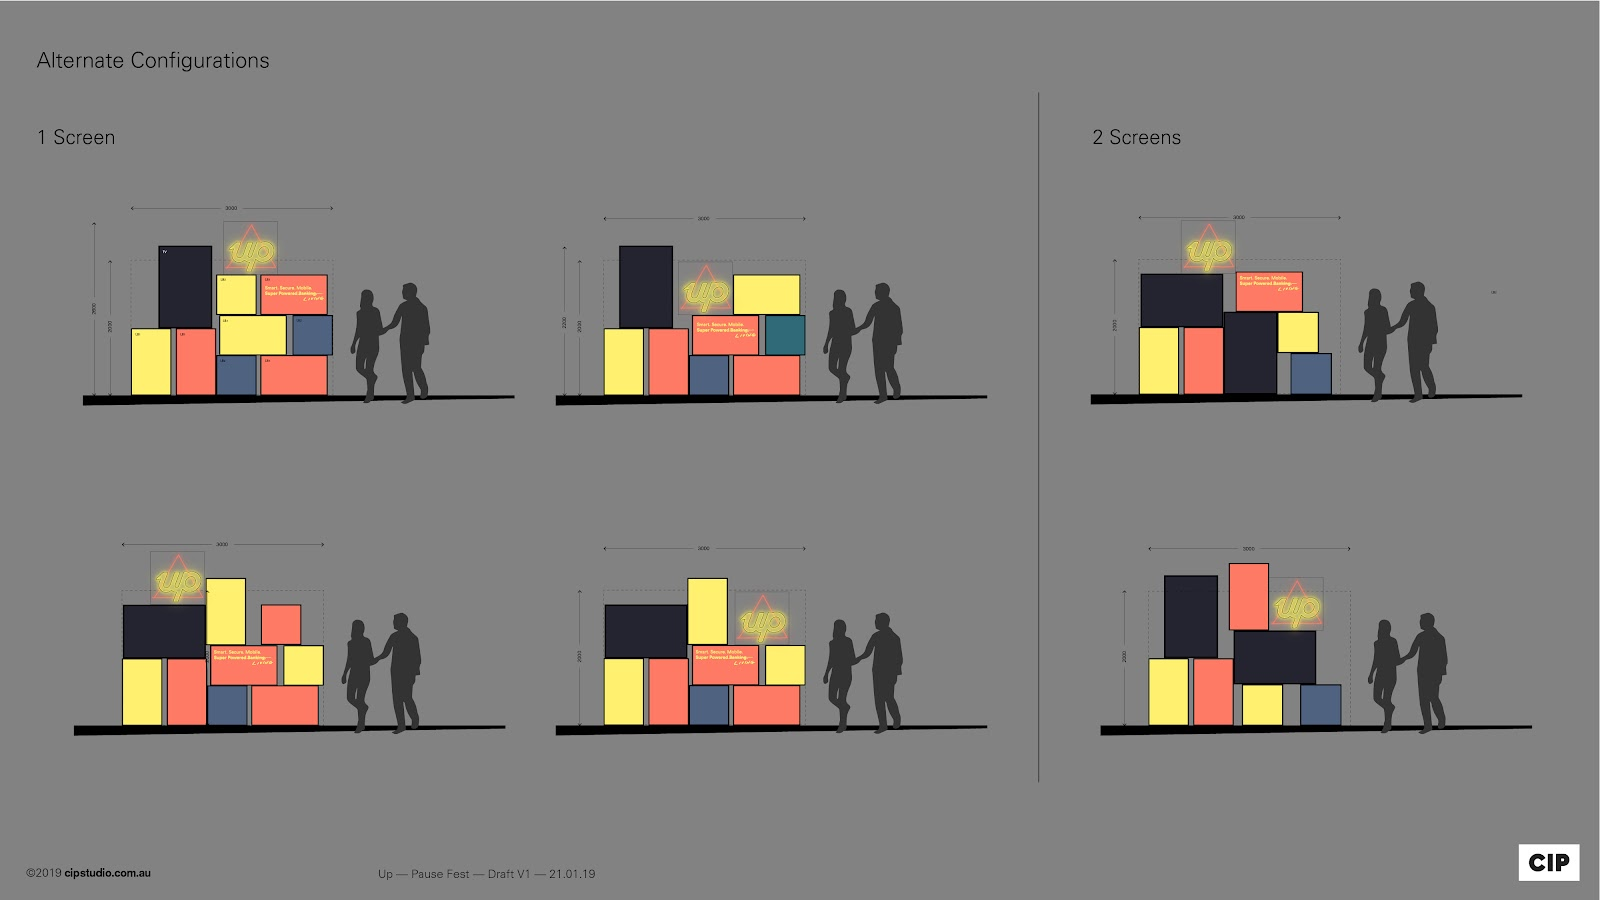 Concept sketches and vision of how the lightboxs can be configured in many ways